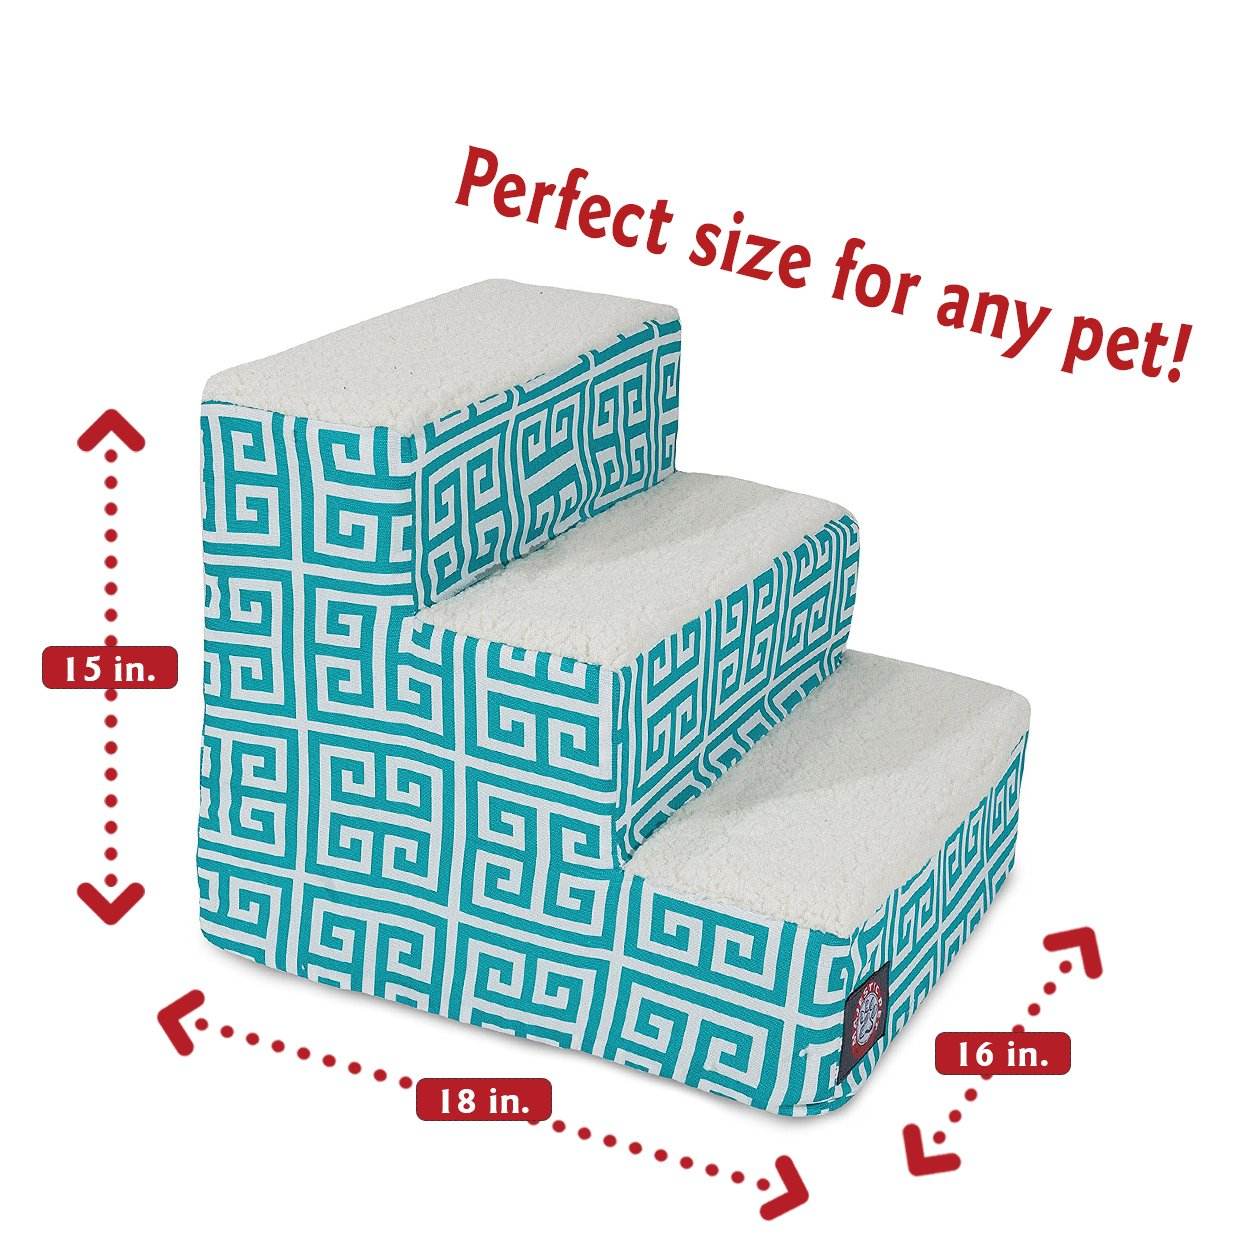 Majestic Pet 3 Step Portable Pet Stairs By Products Pacific Towers Steps for Cats and Dogs Blue Teal by Majestic Pet (Image #2)